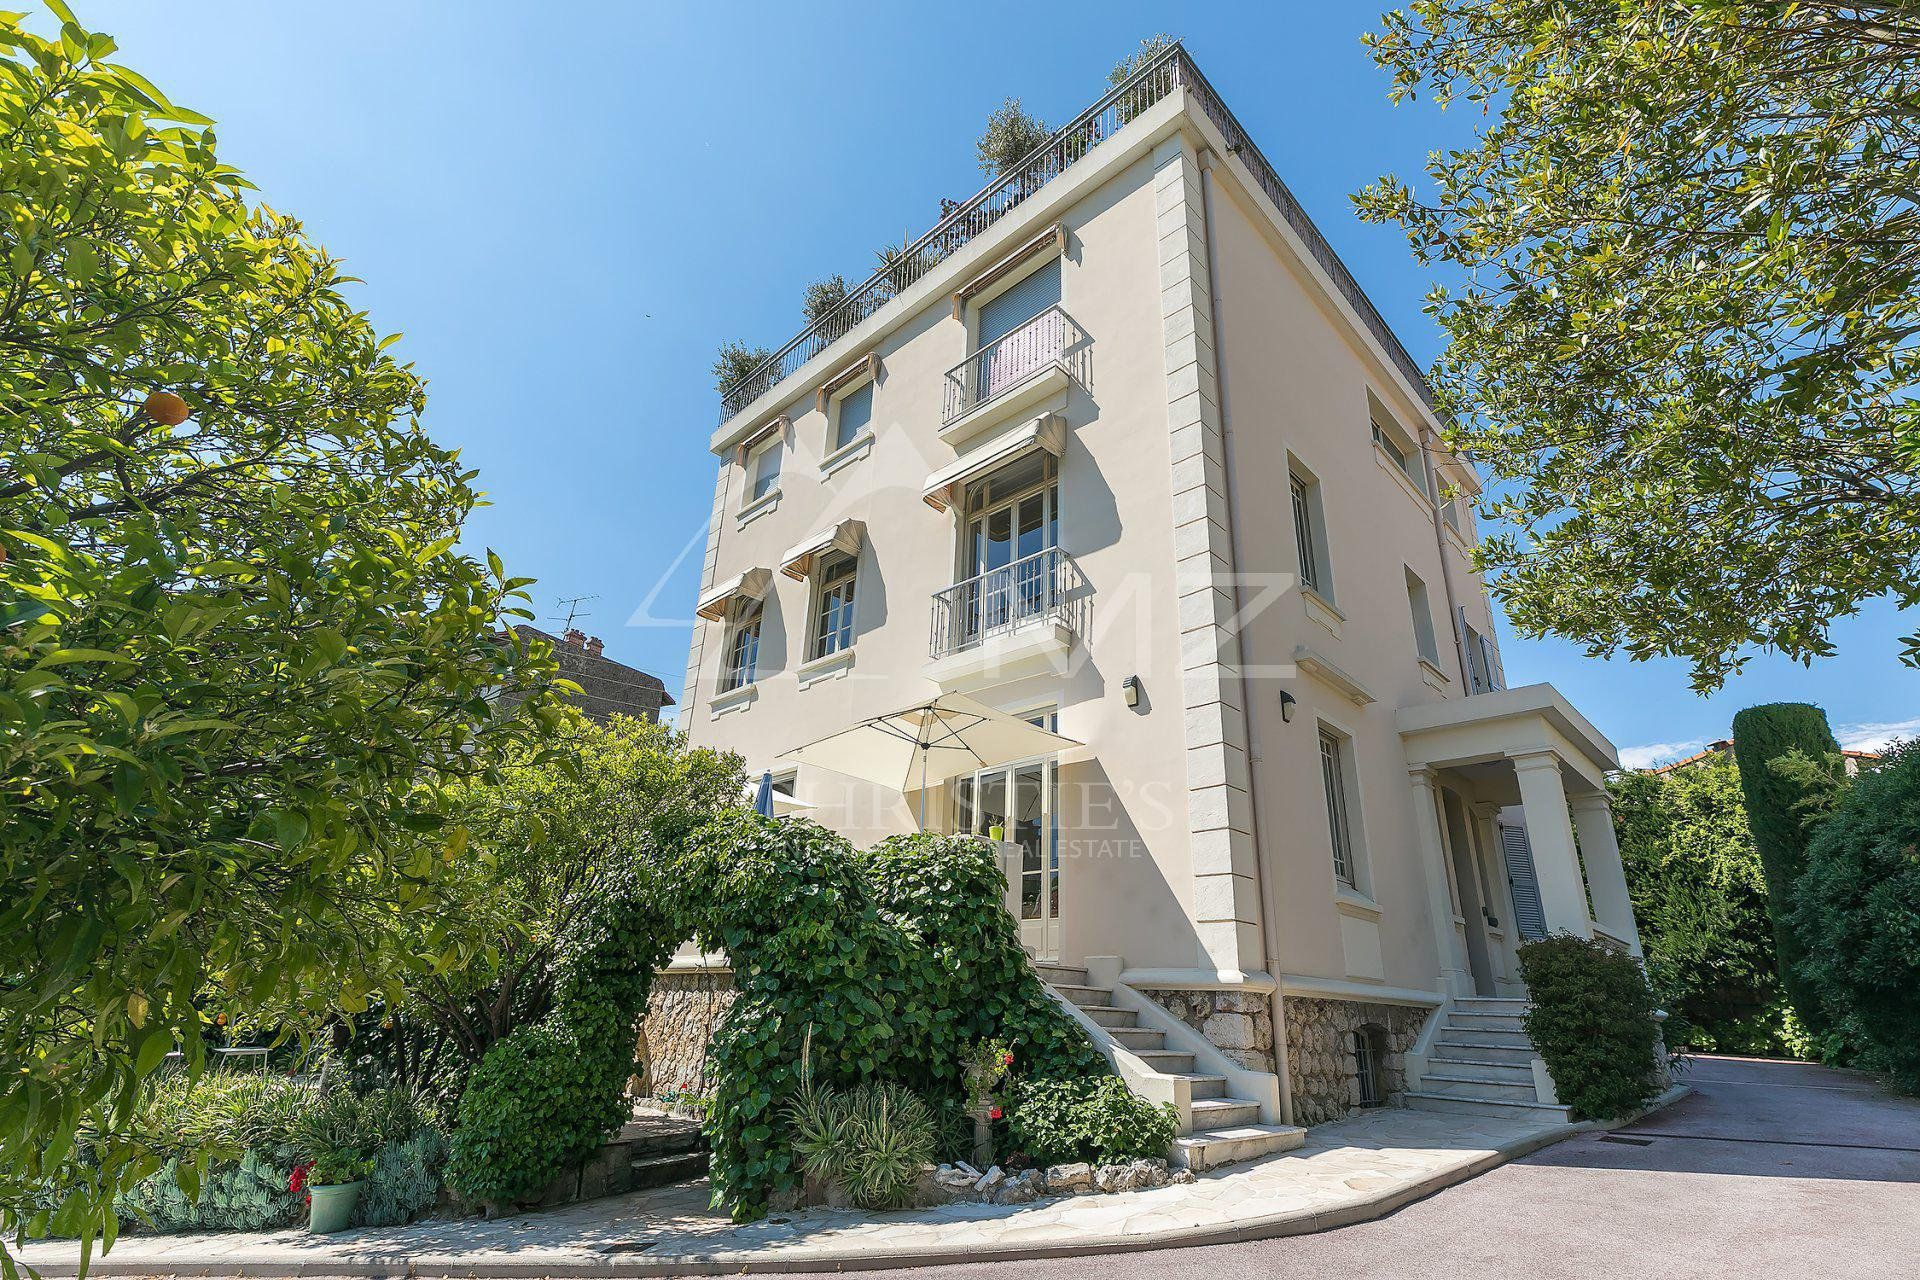 Cannes - Apartment / Villa in a Mansion